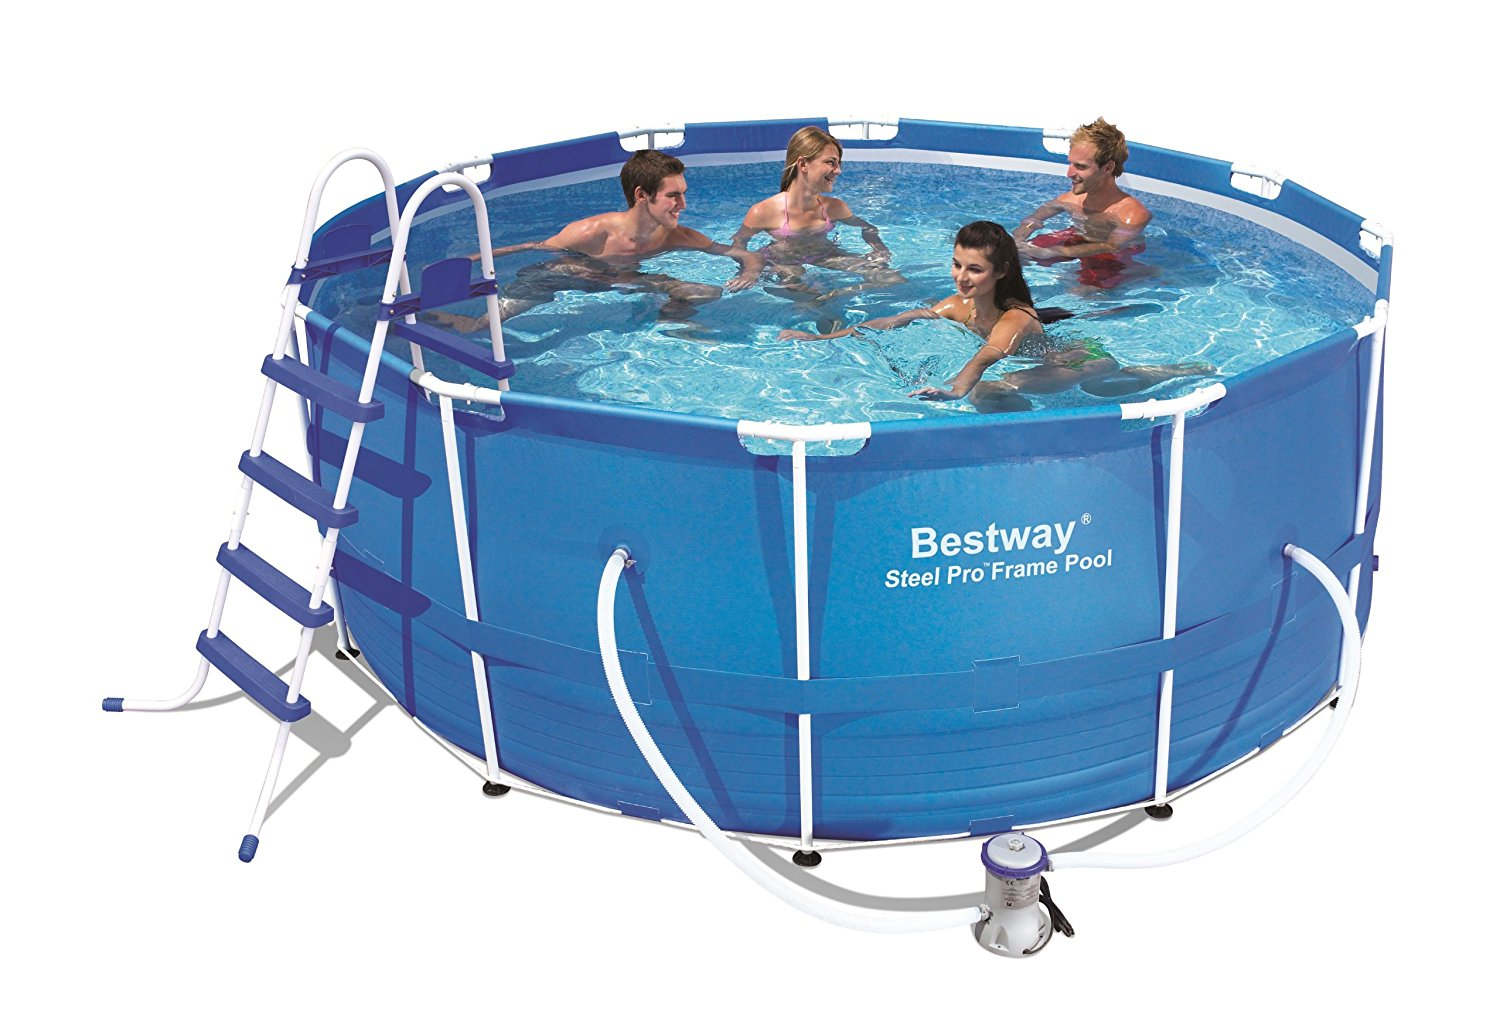 Bestway Steel Pro Above Ground Pool Set